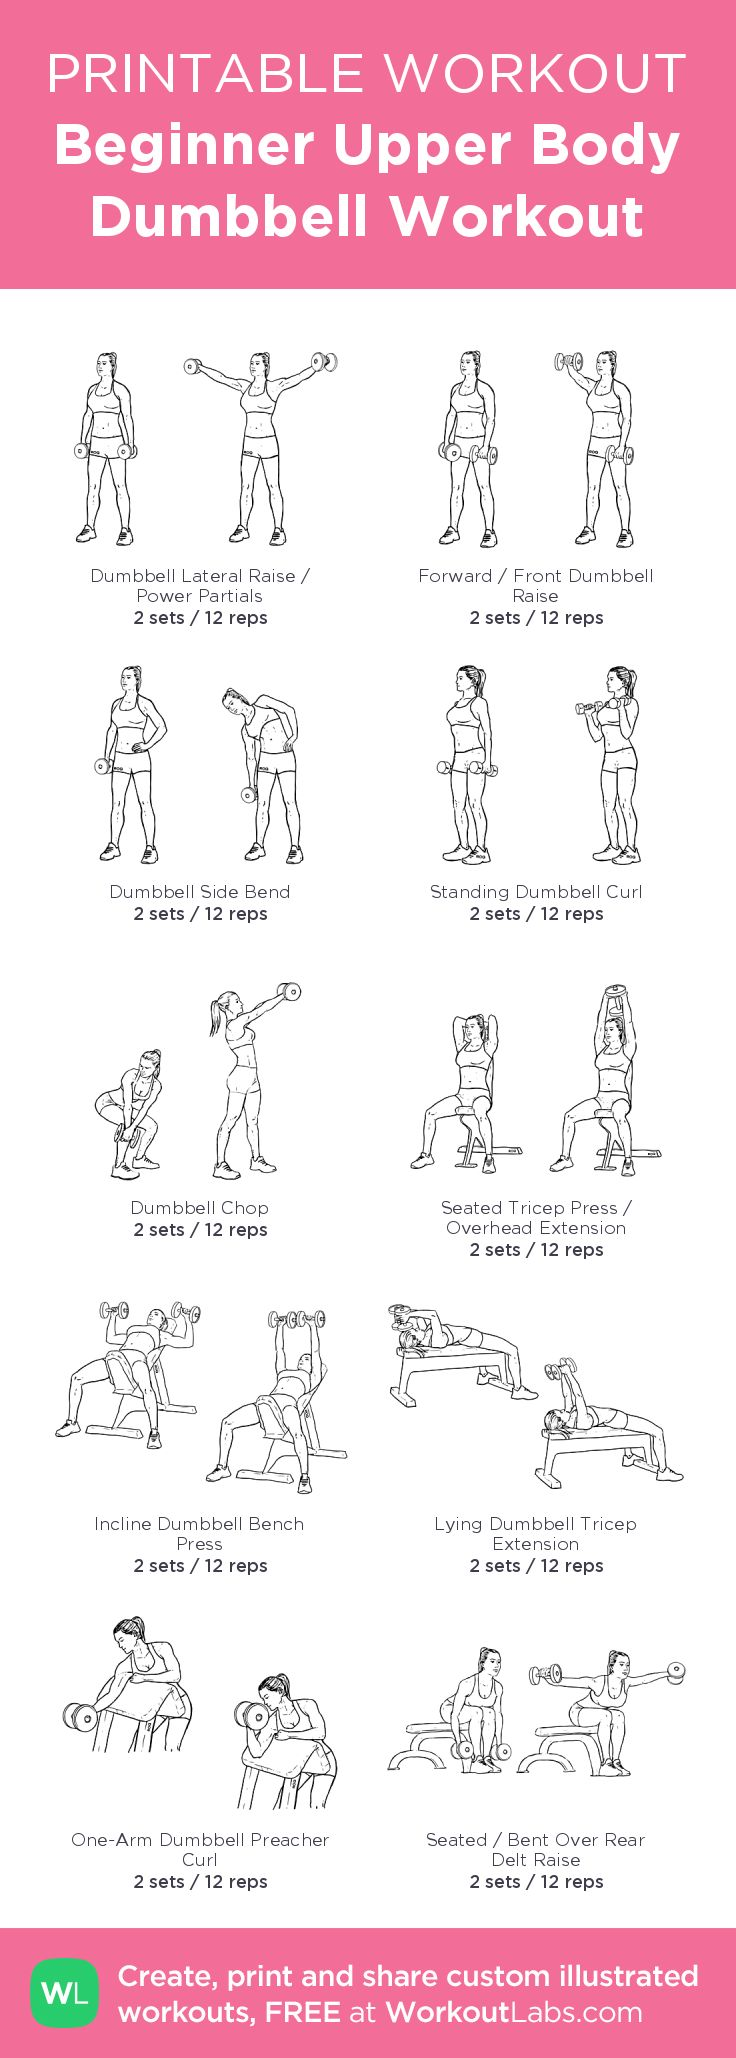 Beginner Upper Body Dumbbell Workout– my custom exercise plan created at WorkoutLabs.com • Click through to download as a printable workout PDF #customworkout